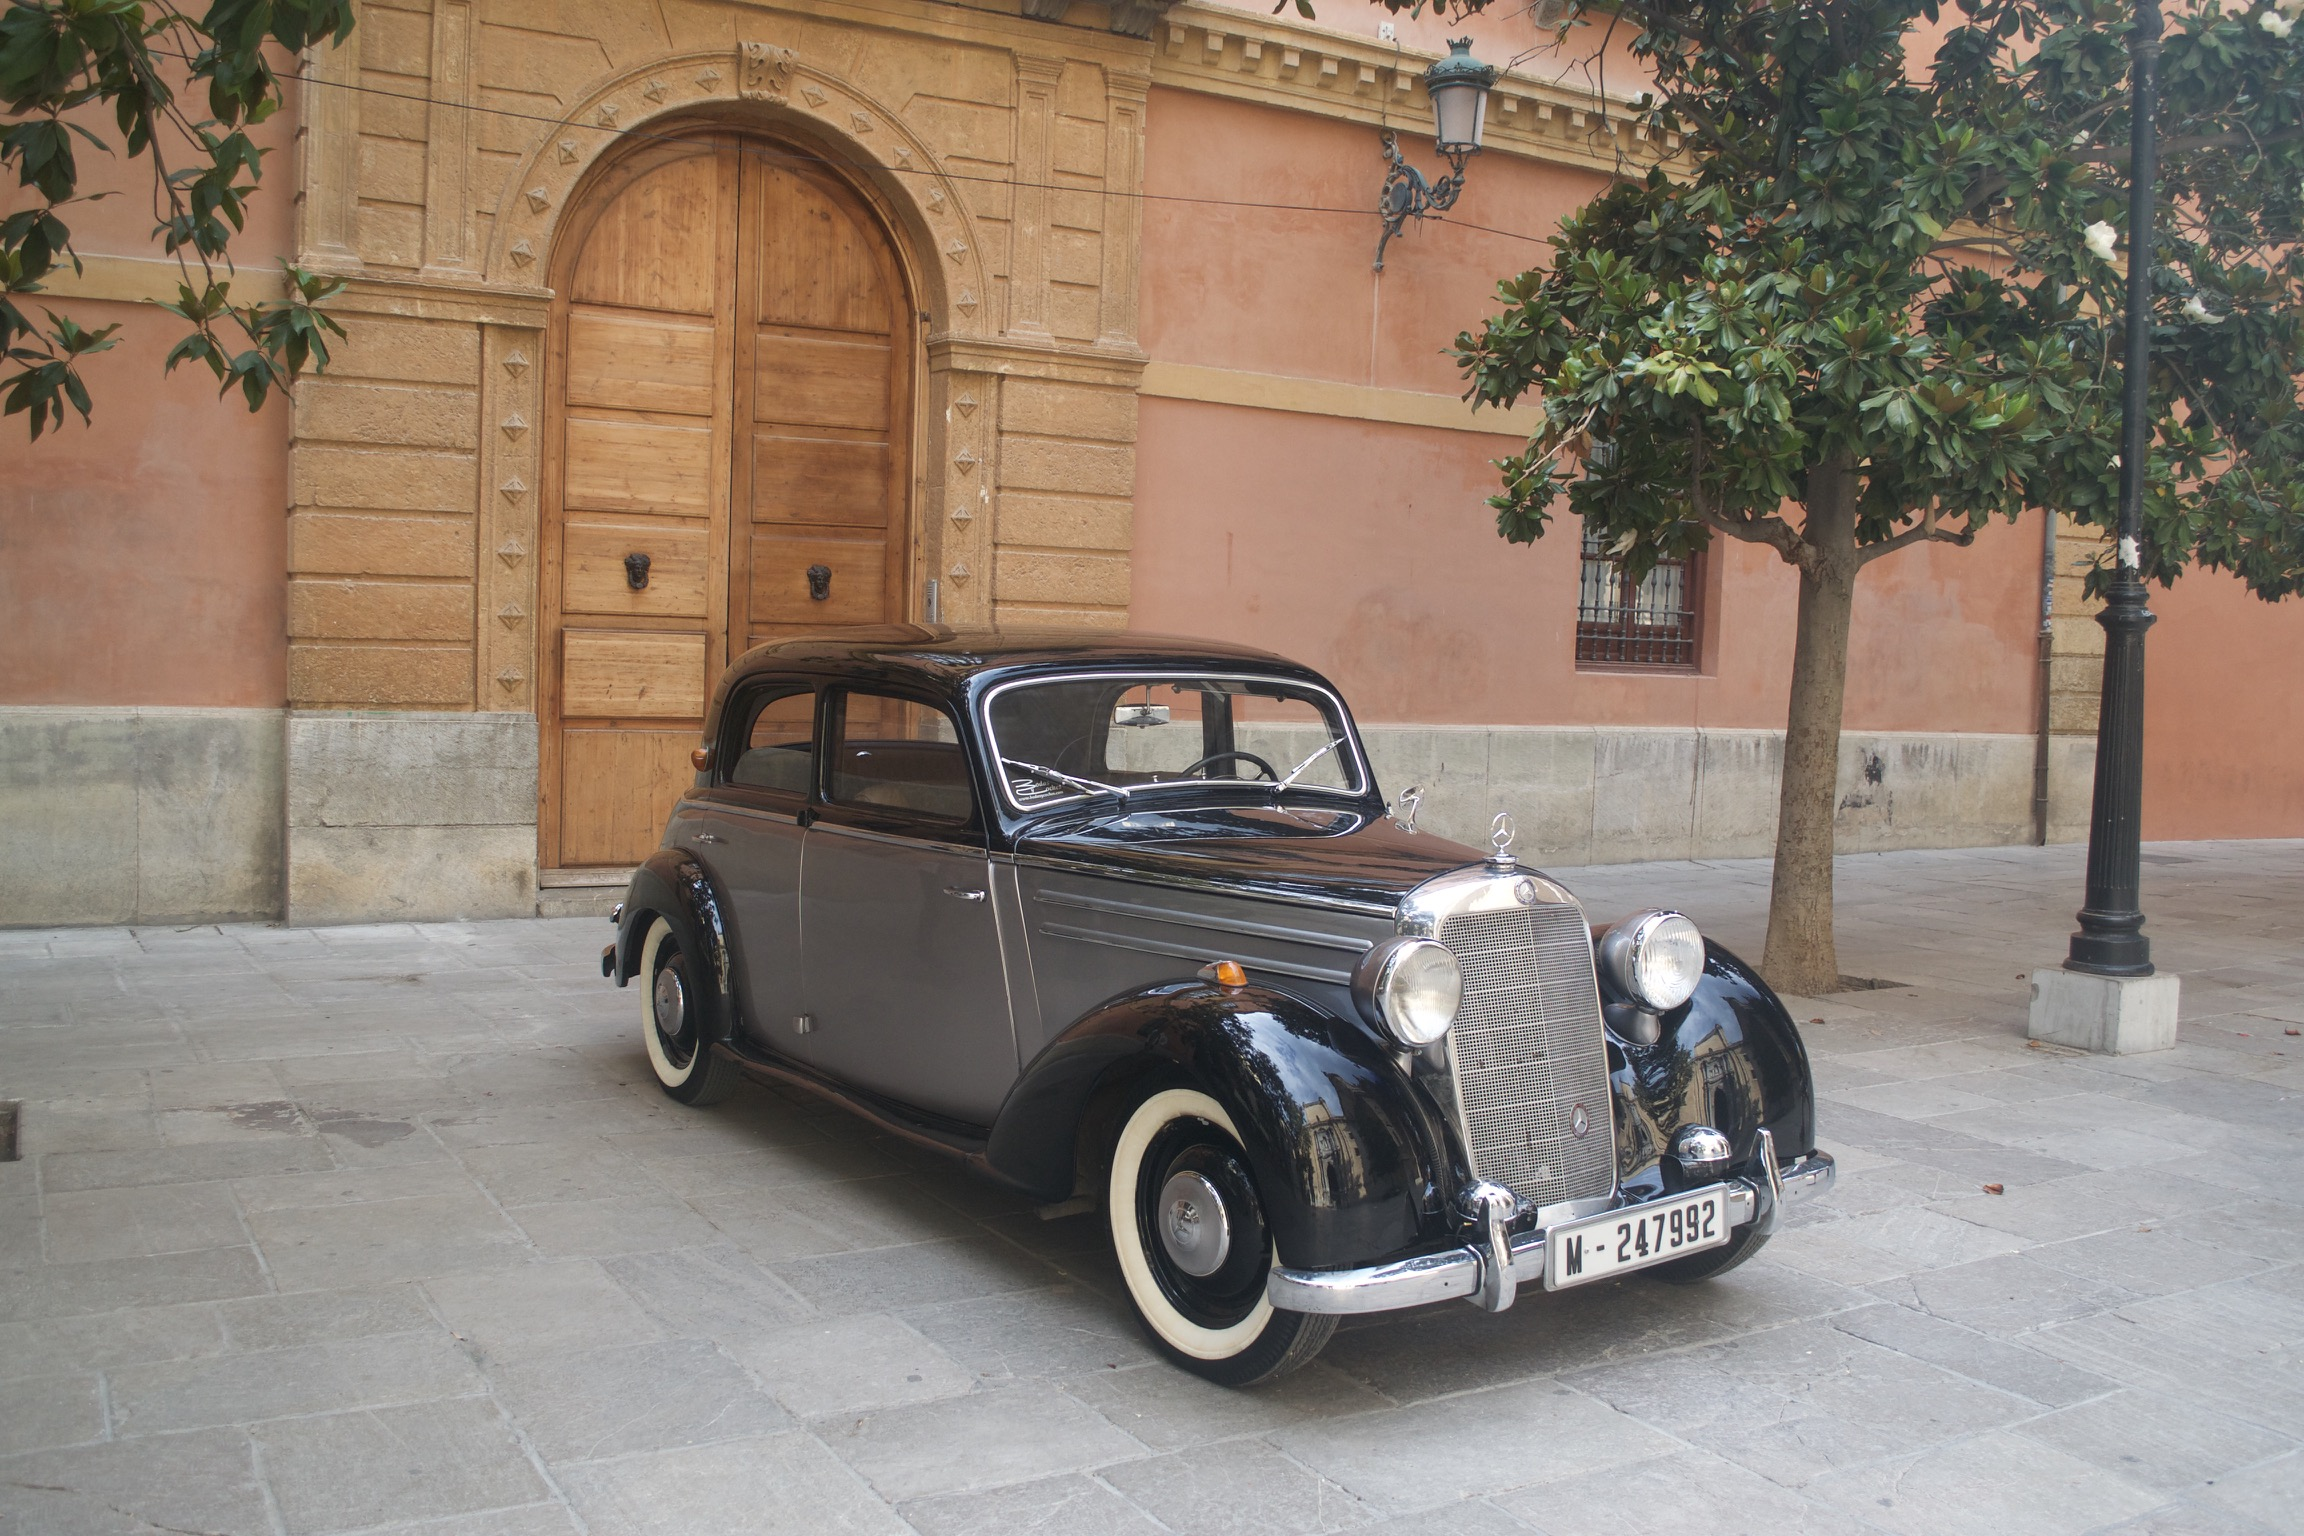 A classic black and gray Mercedes sits in a plaza before a Spanish building's large wooden doors.